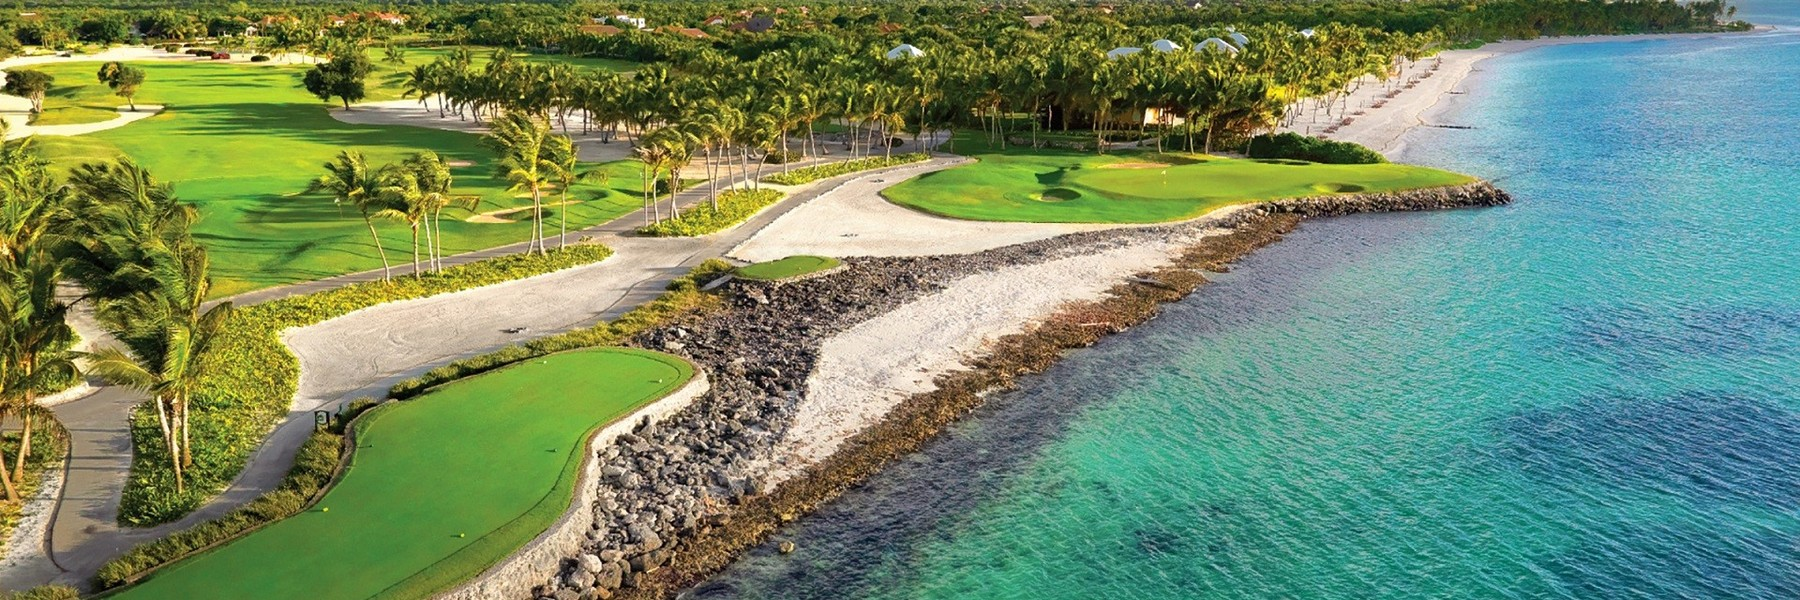 Golf Vacation Package - Great Deal in Cap Cana!  AlSol Luxury Village All-Inclusive + Spectacular Golf from $297 per day!